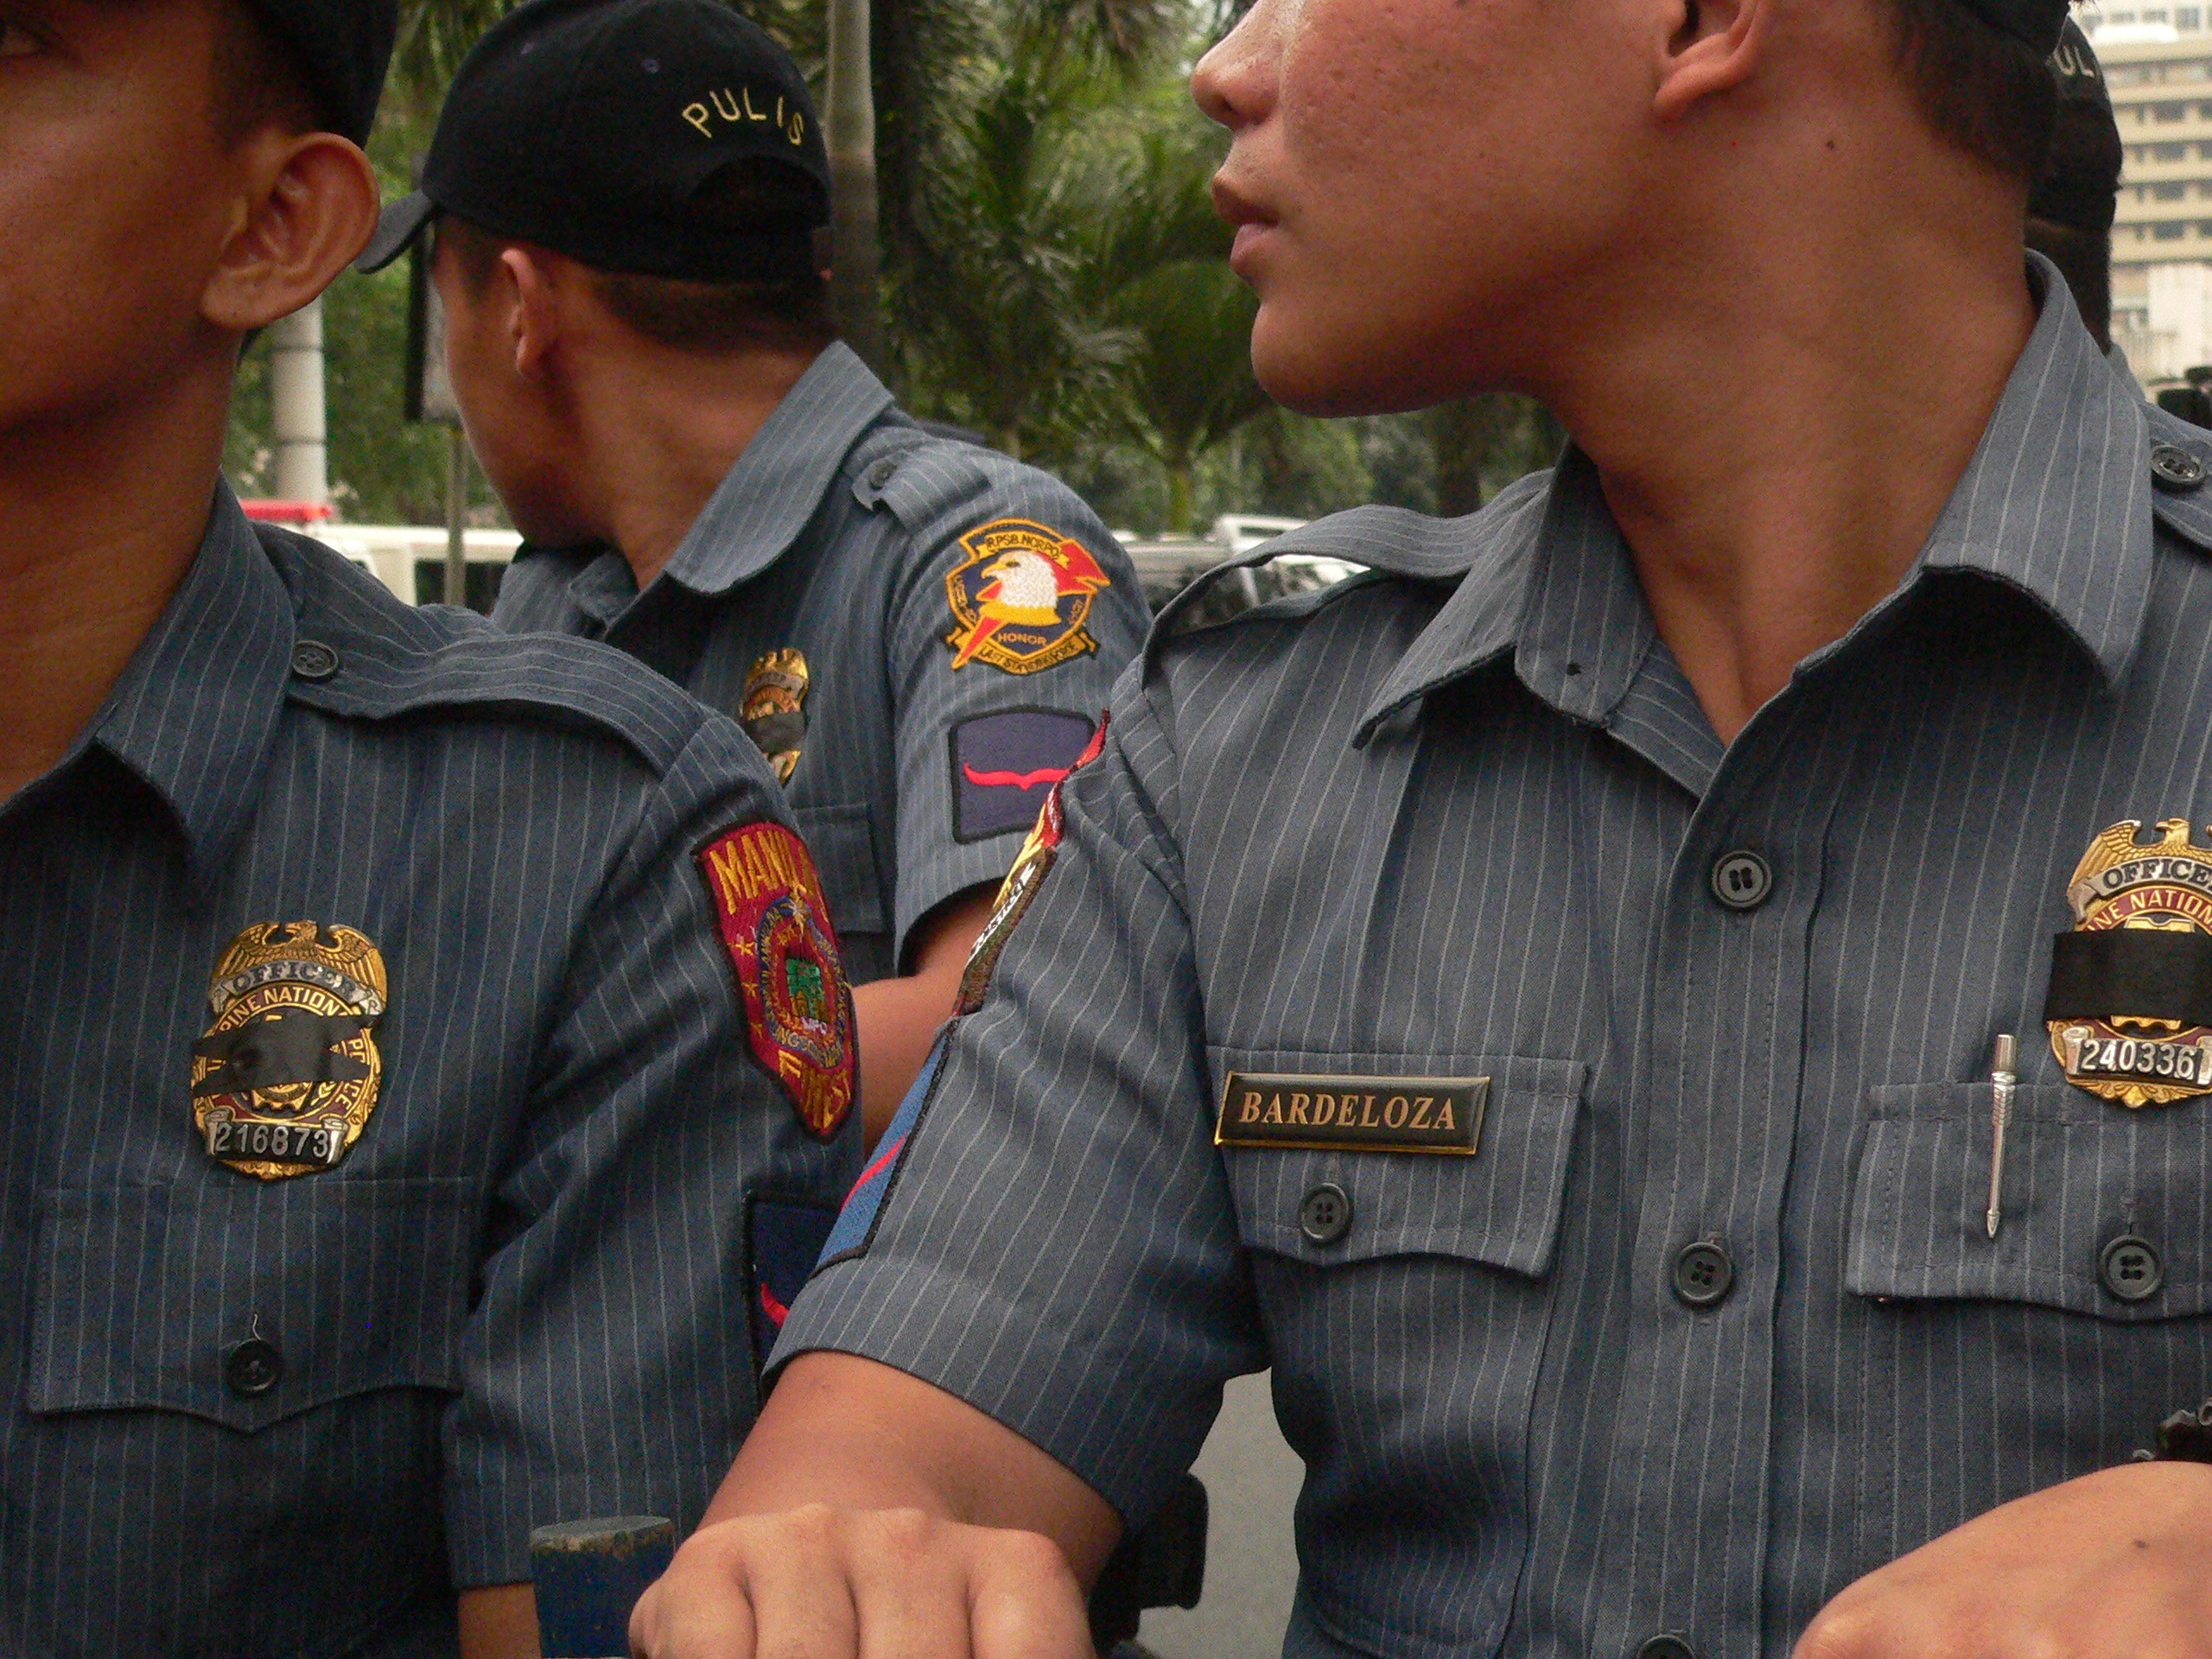 Anti-riot police men wear black ribbon over their badges (Photo by D.Ayroso)